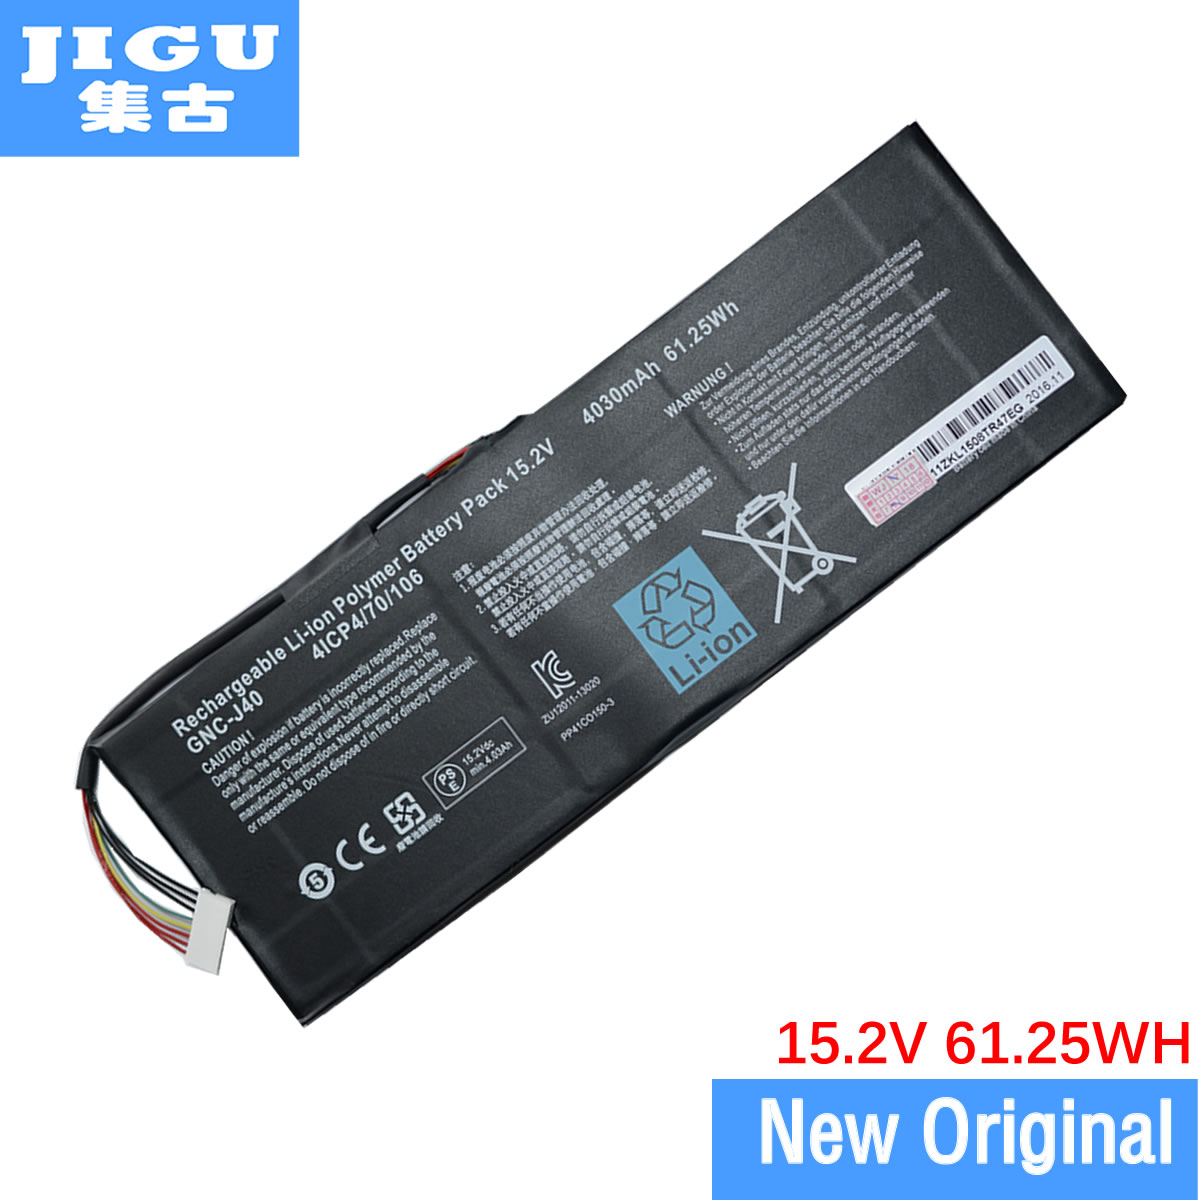 JIGU Original Laptop battery 916TA013F GNC-J40 For SCHENKER XMG C504 FOR GIGABYTE P34 V4 P34G V2 P34W V3 V4 slim laptop charger 19 5v 7 7a 19v 7 9a ac power adapter for gigabyte aero 14 15 15w v8 15w bk4 p34k v3 v5 p34w v3 v4 v5 p35g v2